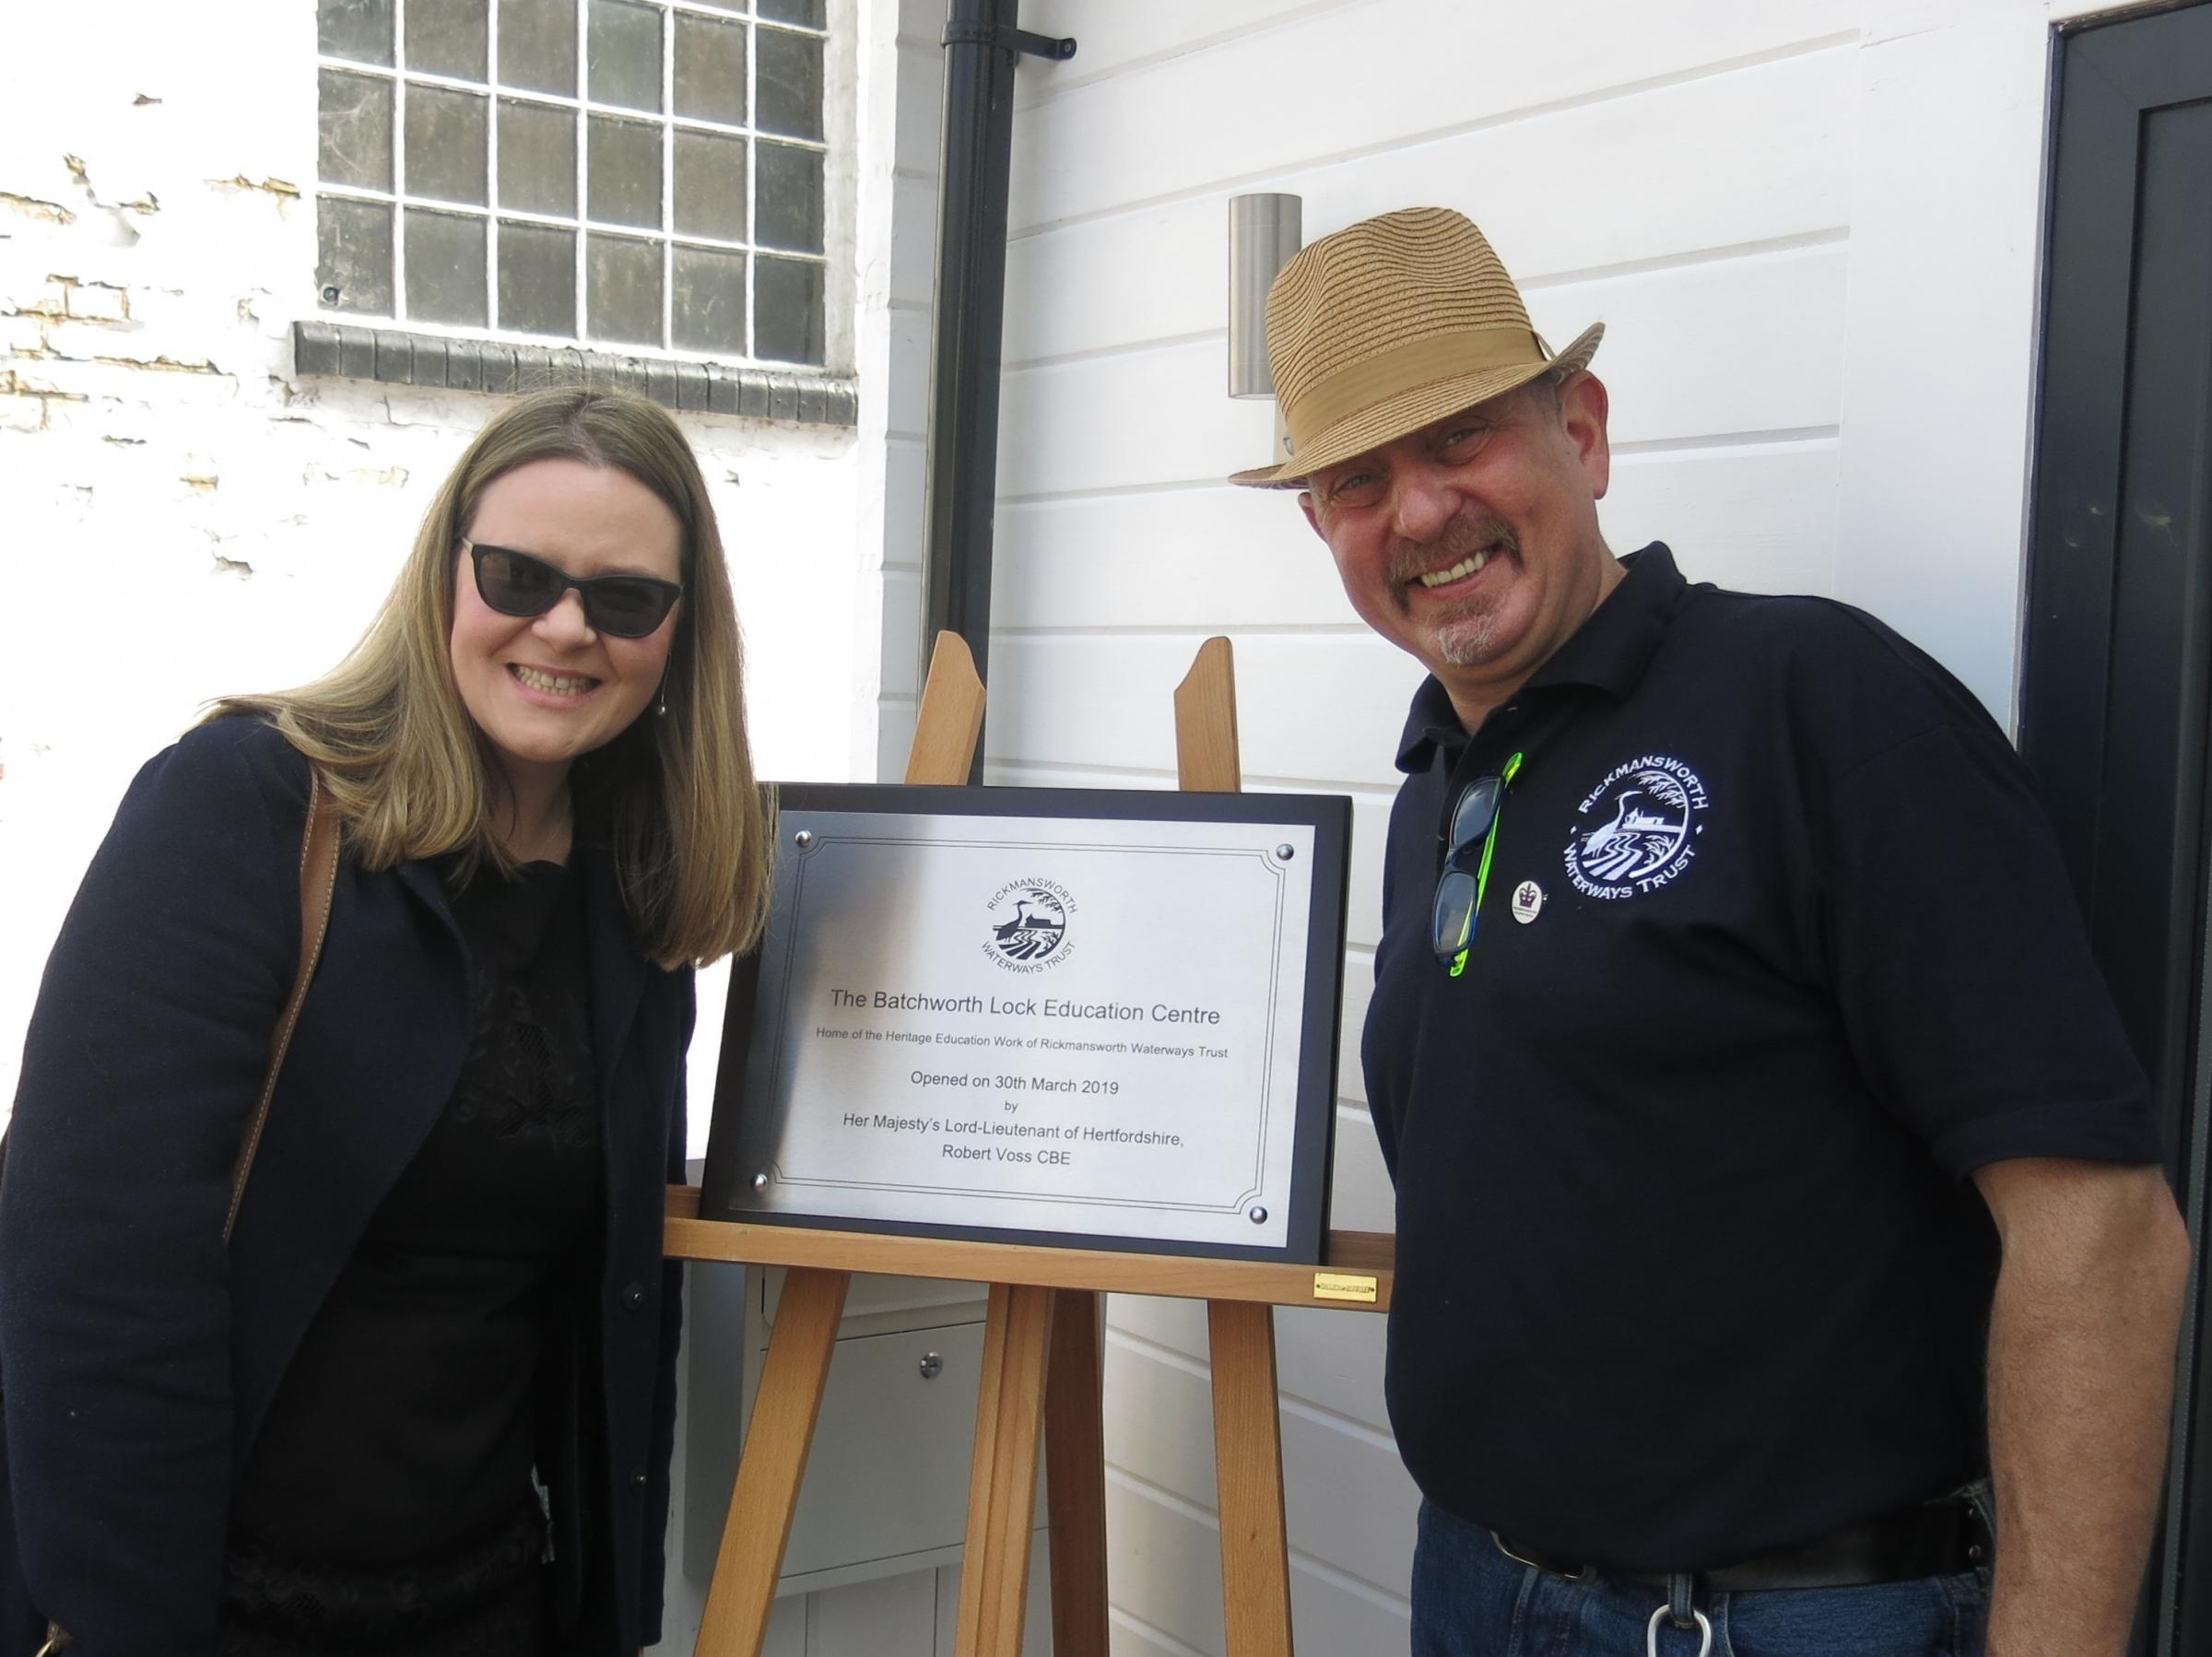 Anna Jarmolinska-Nowak from Affinity Water and Mark Saxon, general manager of Rickmansworth Waterways Trust, next to the commemorative plaque.